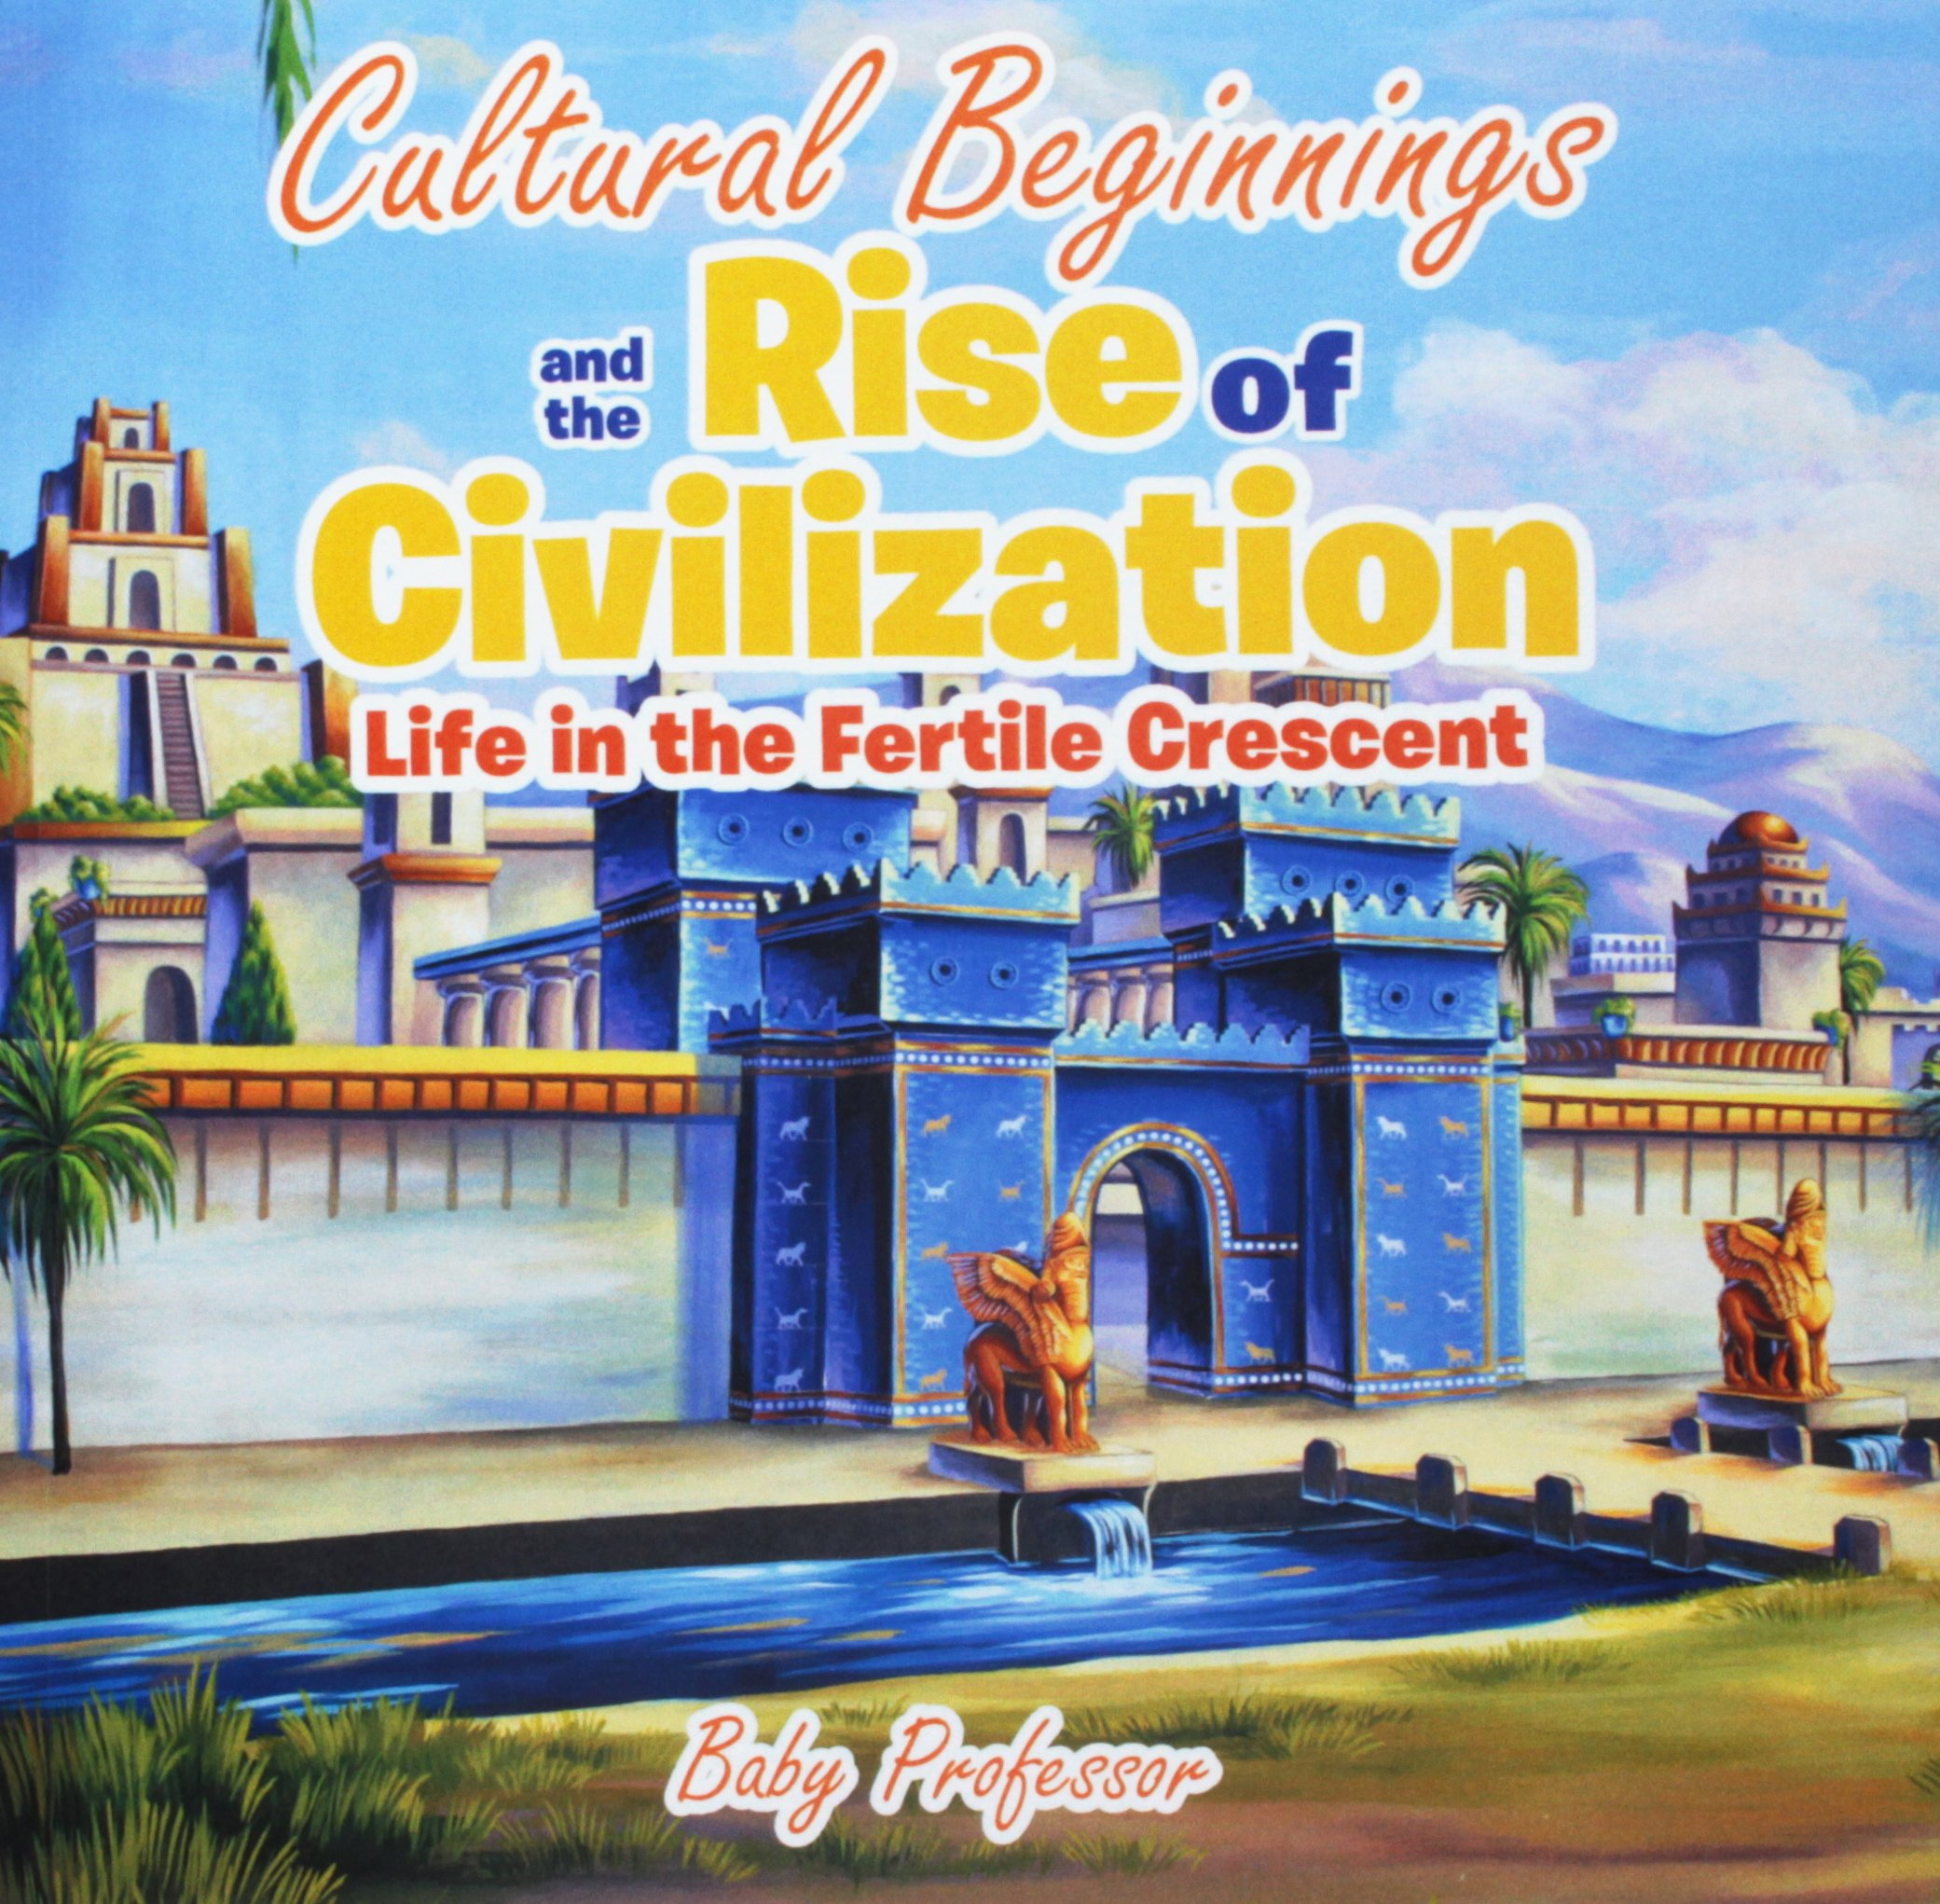 cultural beginnings and the rise of civilization life in the